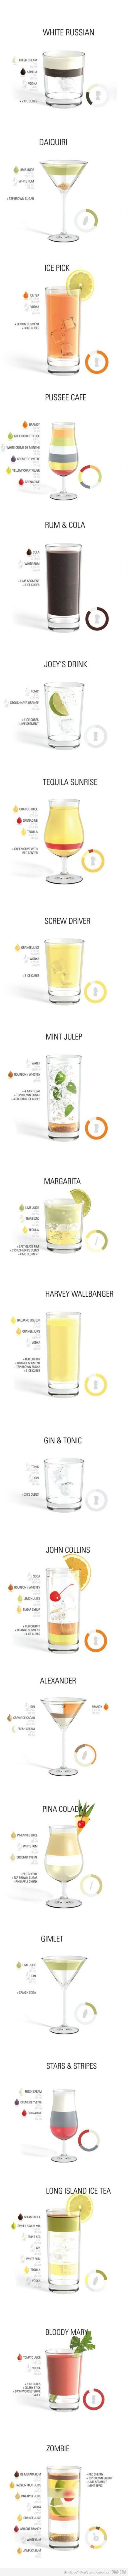 A Visual Guide to ADULT Beverages